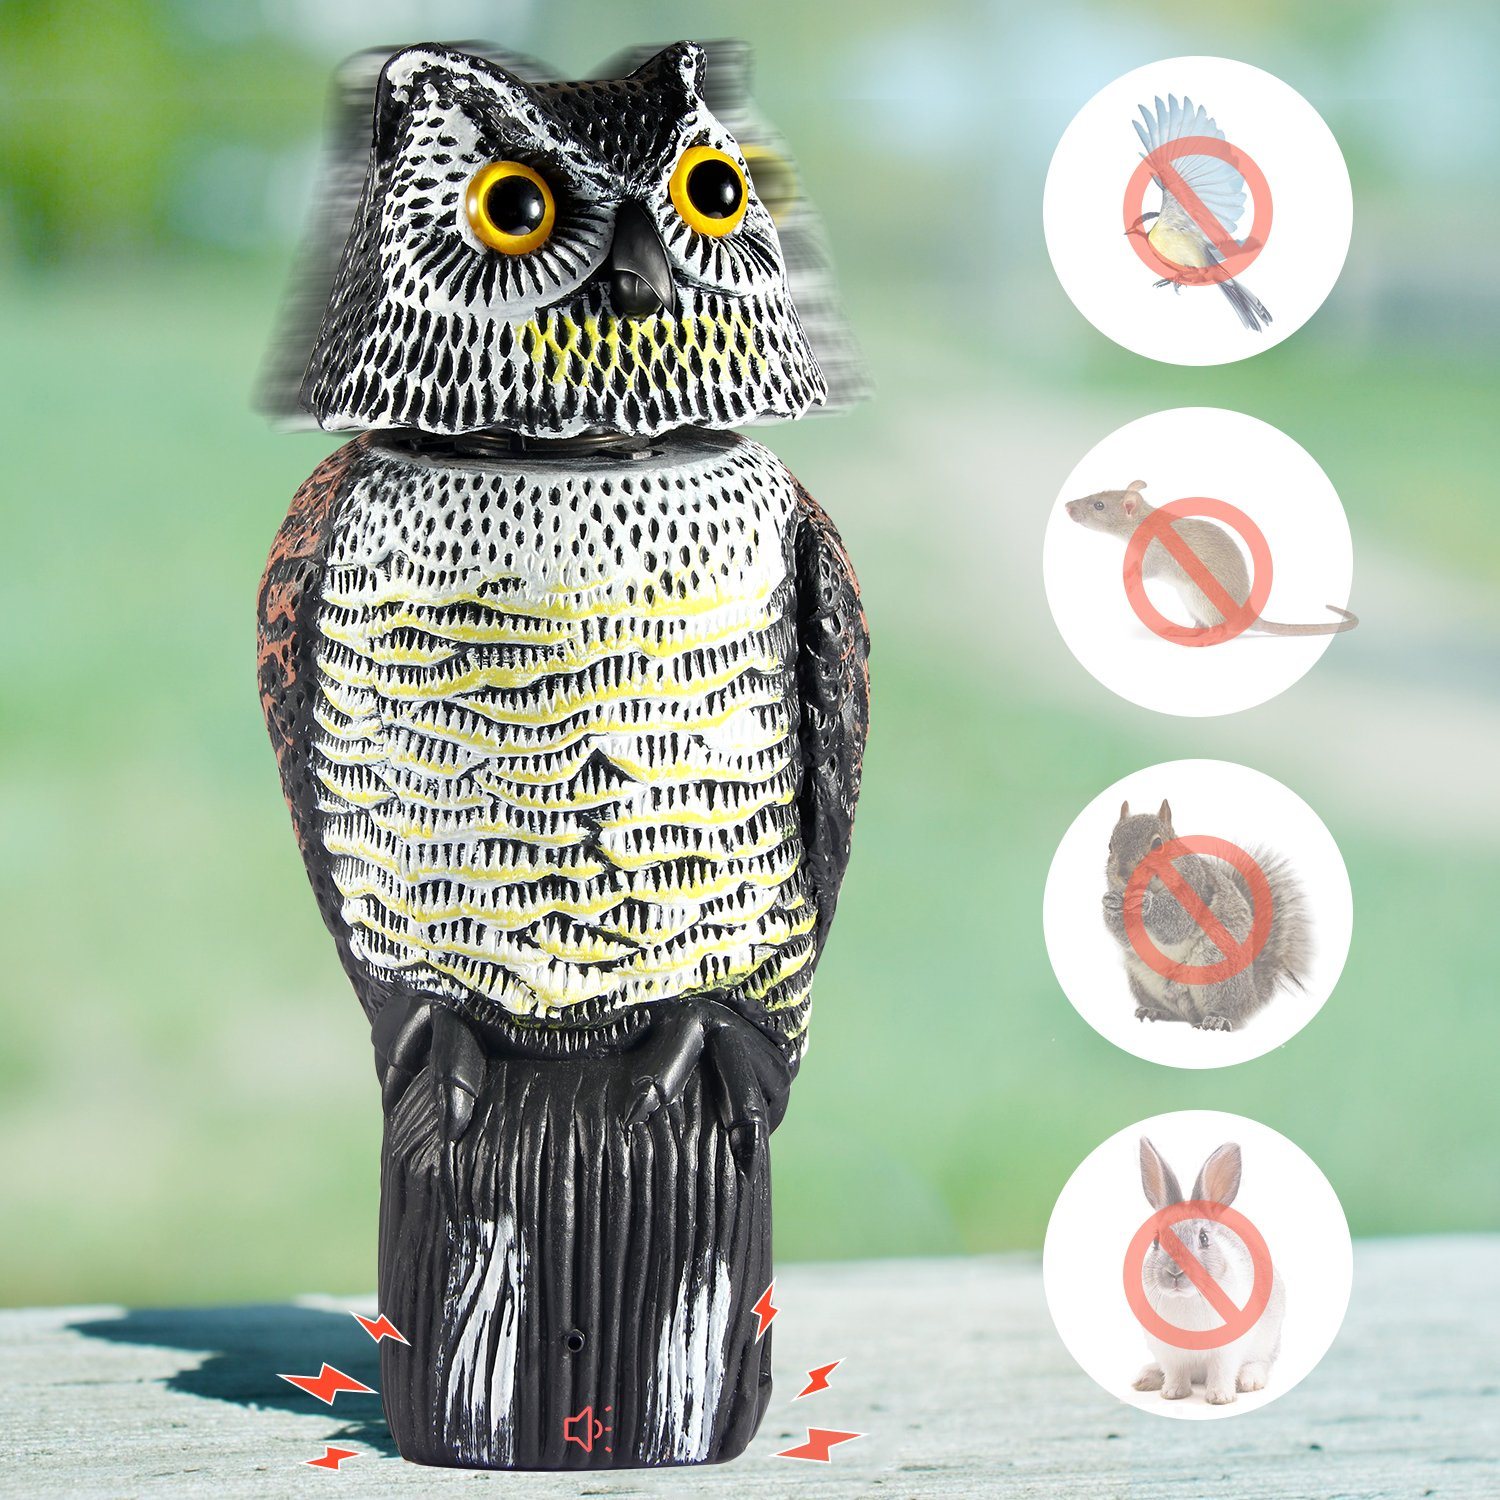 Ohuhu Horned Owl Decoy with Tweet, Light-control System Natural Enemy Pest Deterrent Scarecrow with Rotating Head Pest Control Repellents